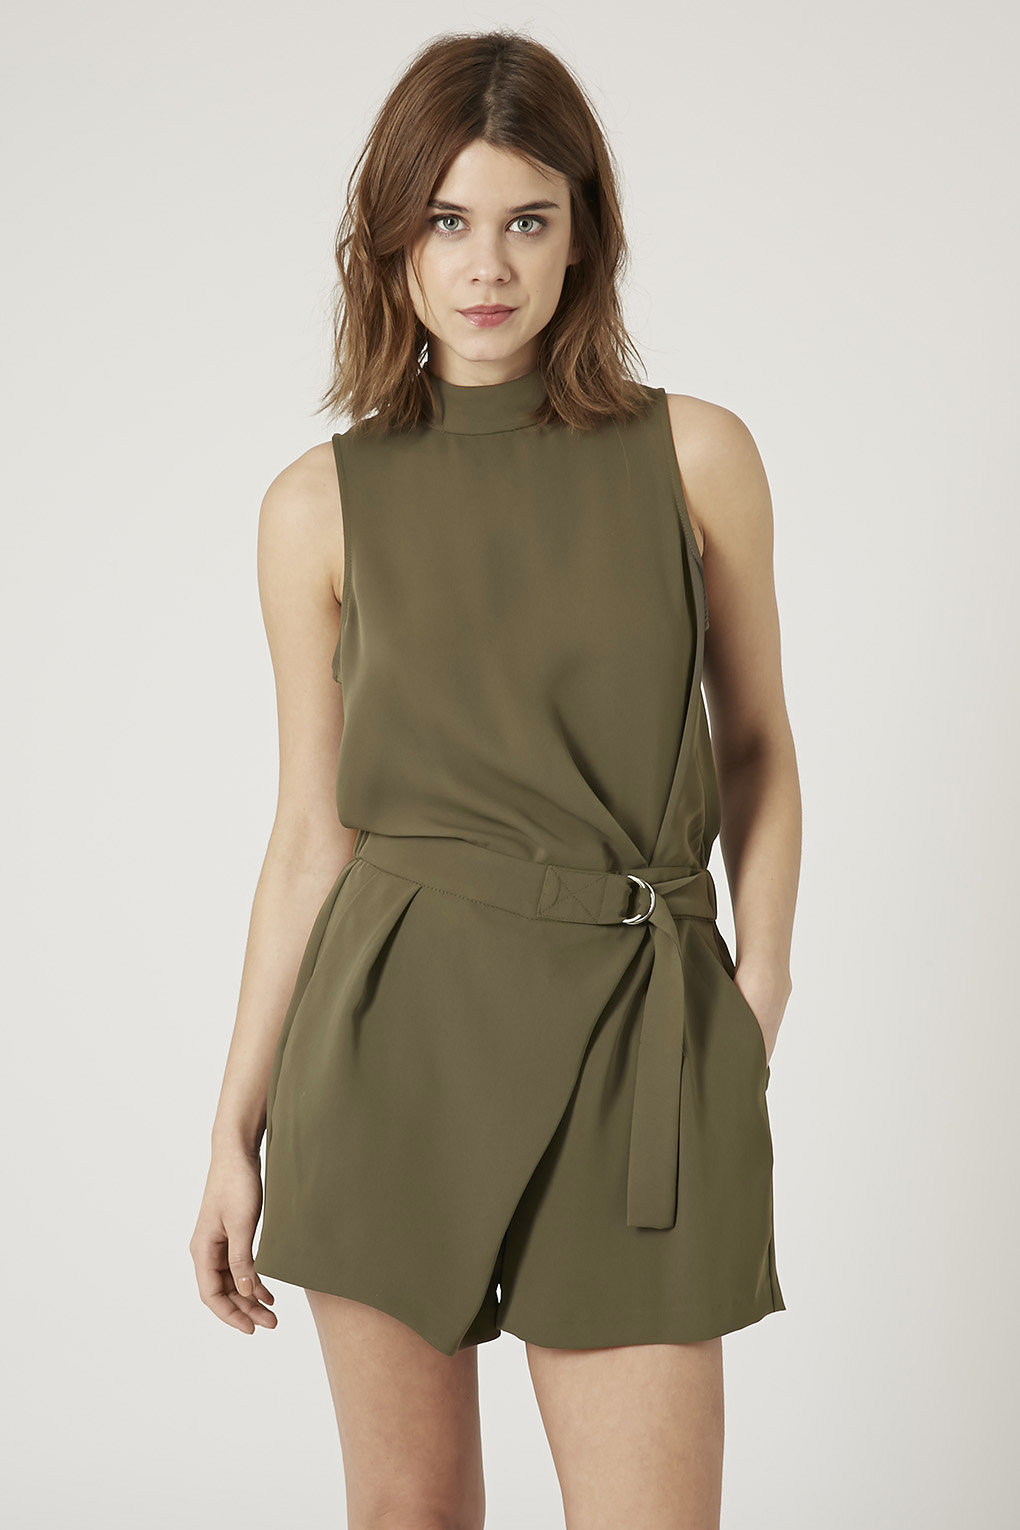 Khaki Wearable Trends Spring